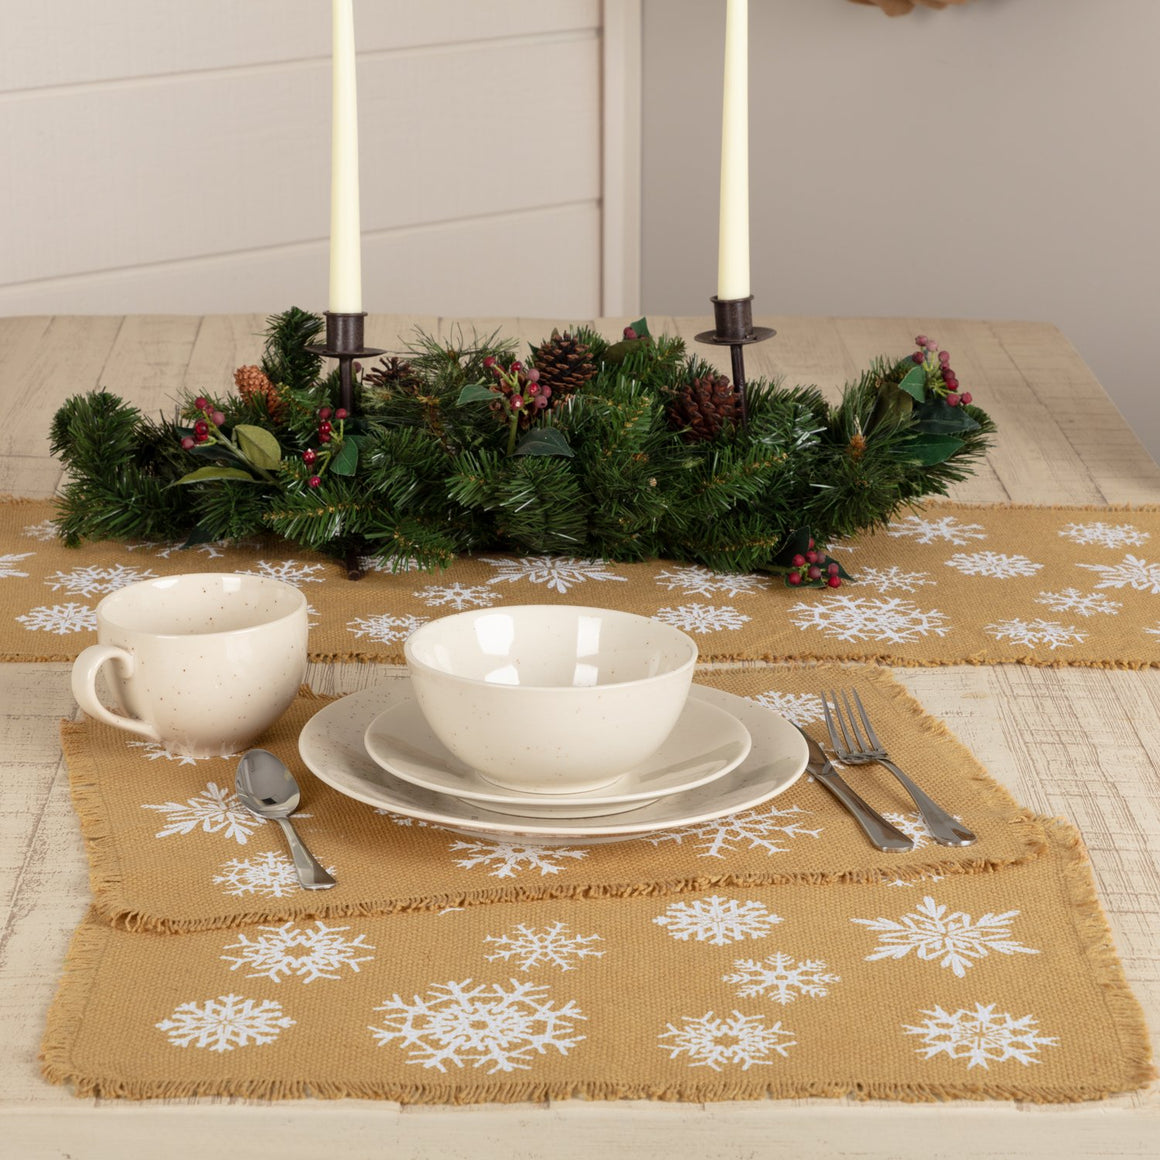 Snowflake Burlap Natural Placemat Set of 6 12x18